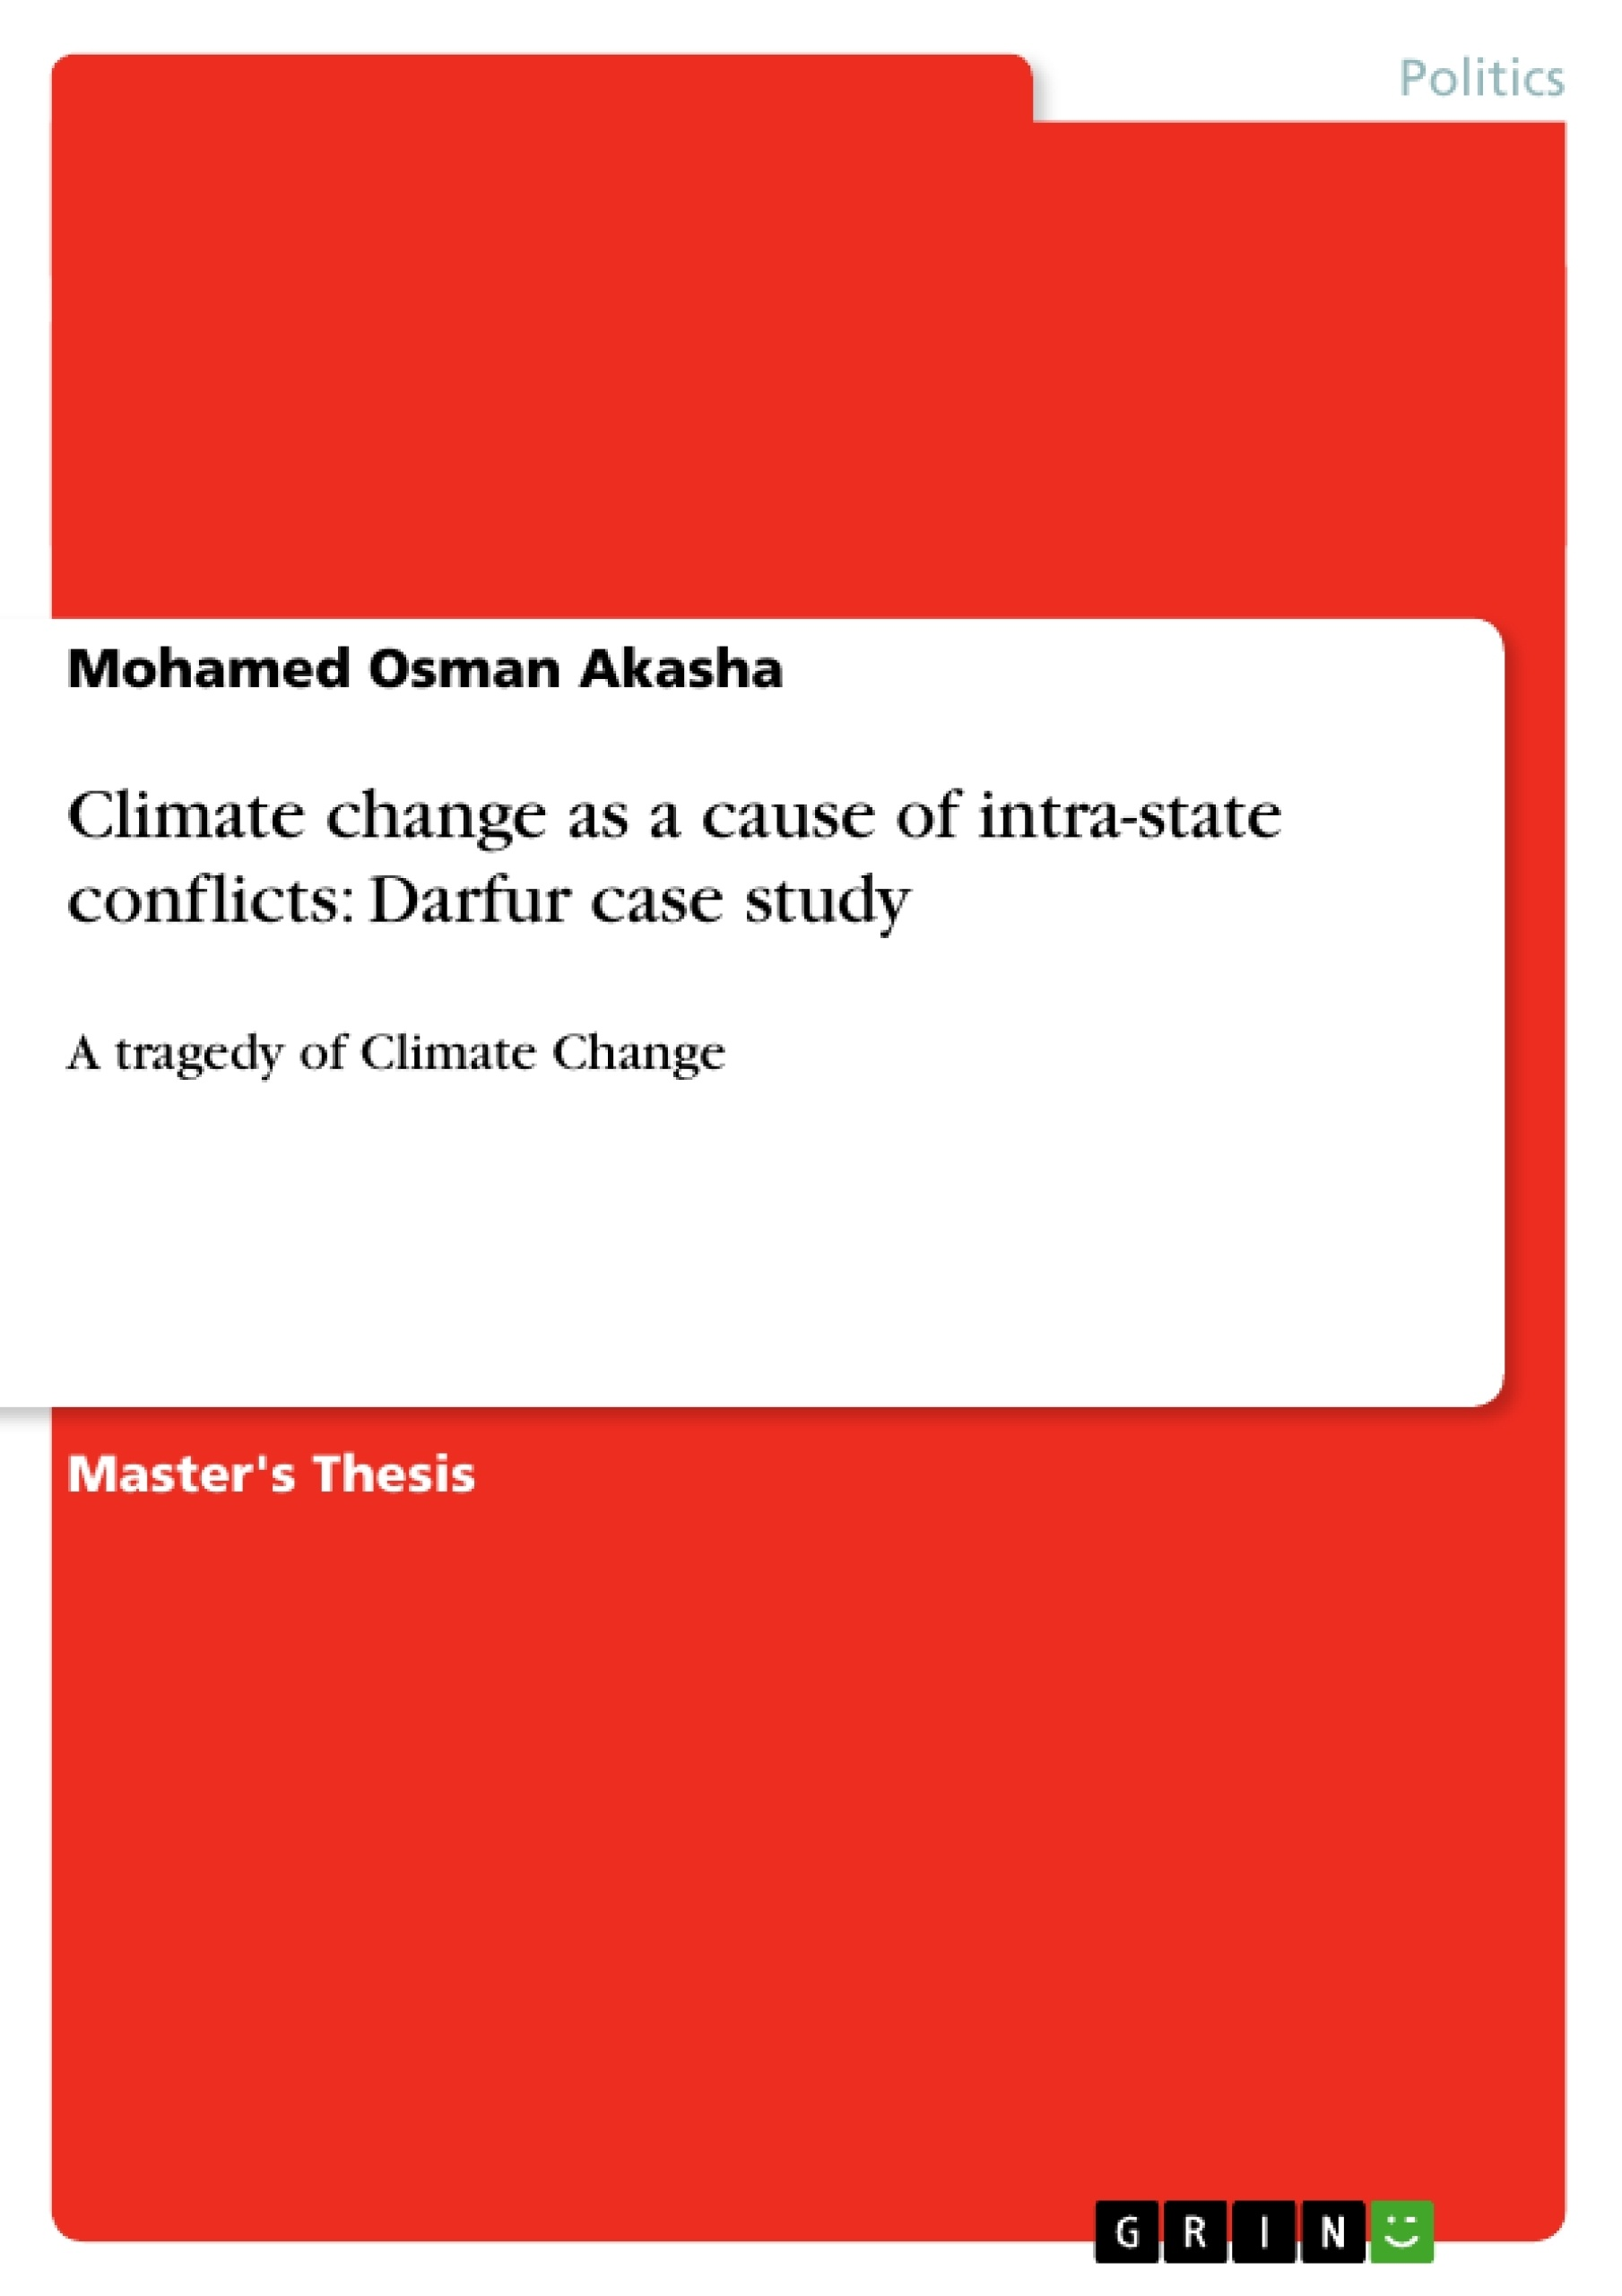 Title: Climate change as a cause of intra-state conflicts: Darfur case study